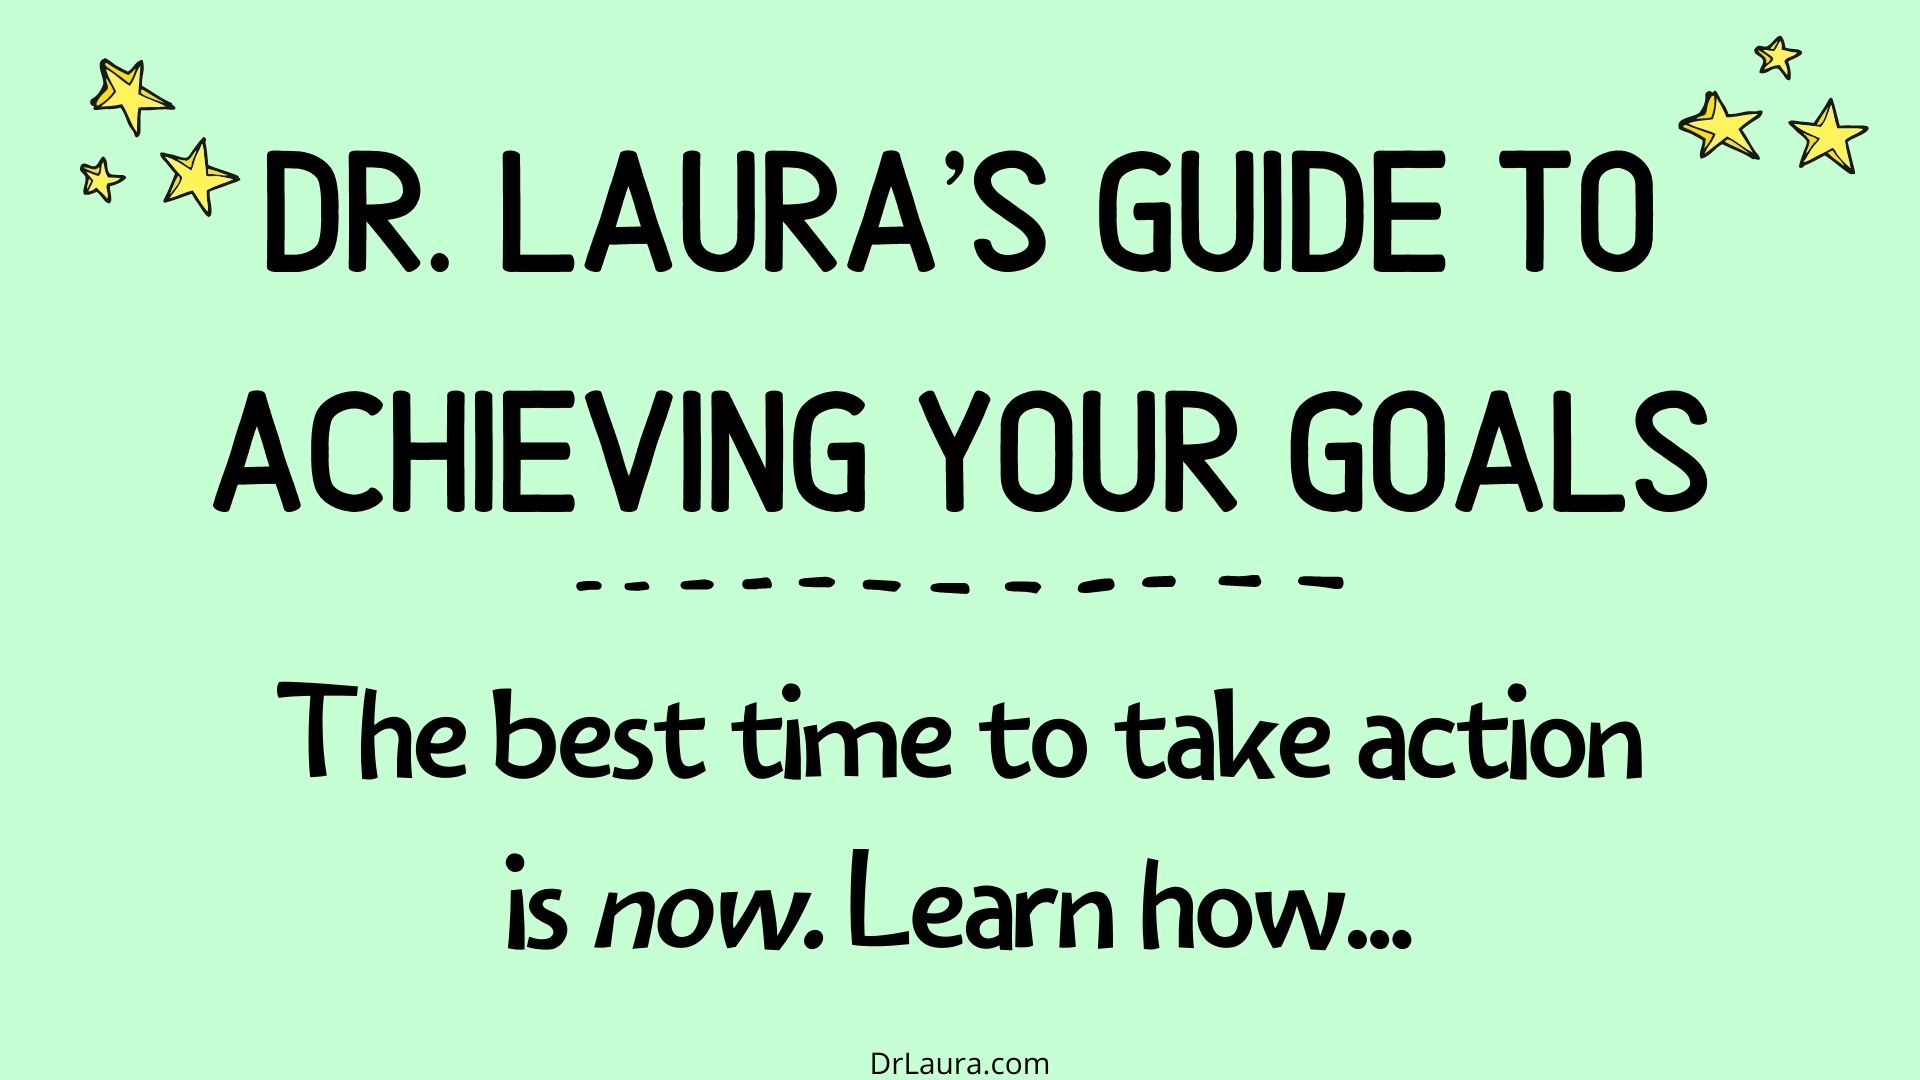 Blog: Dr. Laura's Guide to Achieving Your Goals